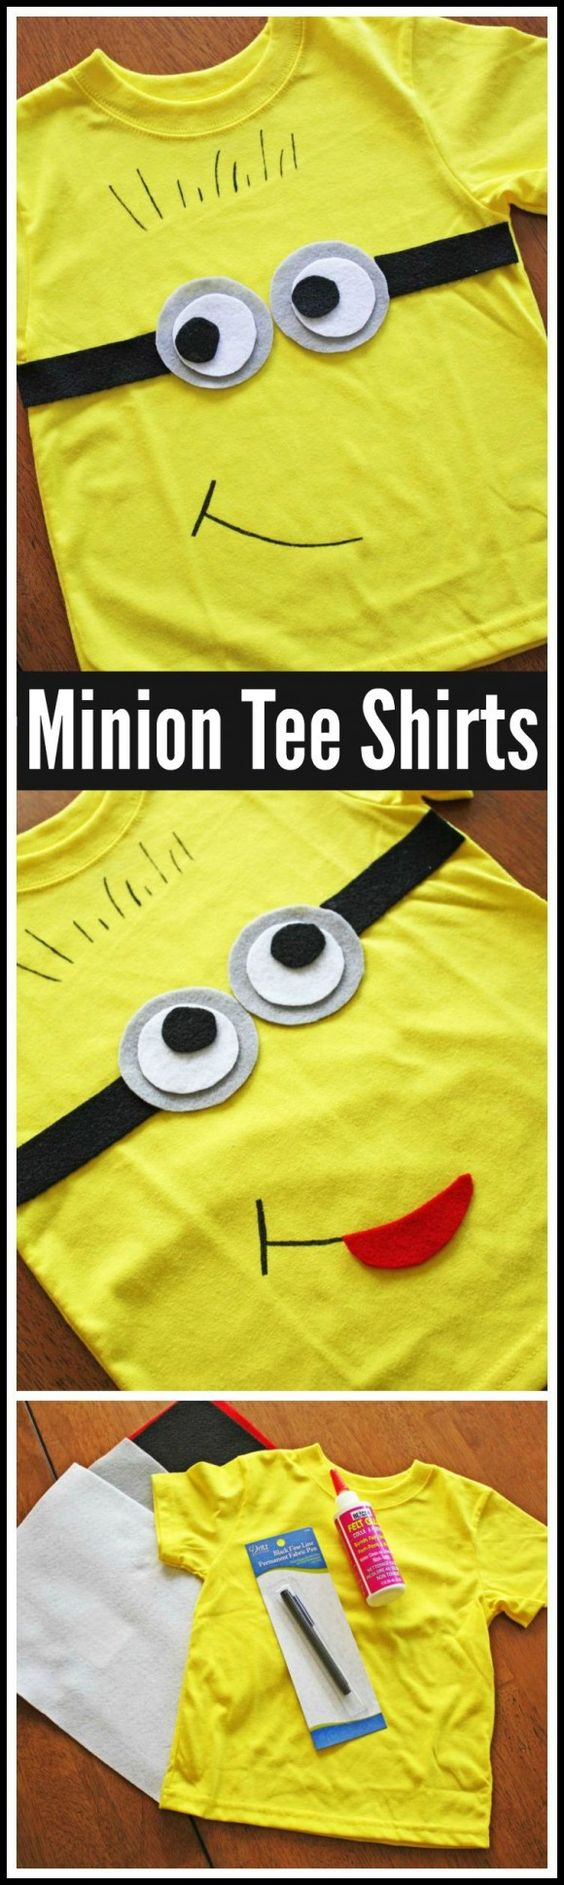 how cute is this minion tee shirt minions tee shirts. Black Bedroom Furniture Sets. Home Design Ideas